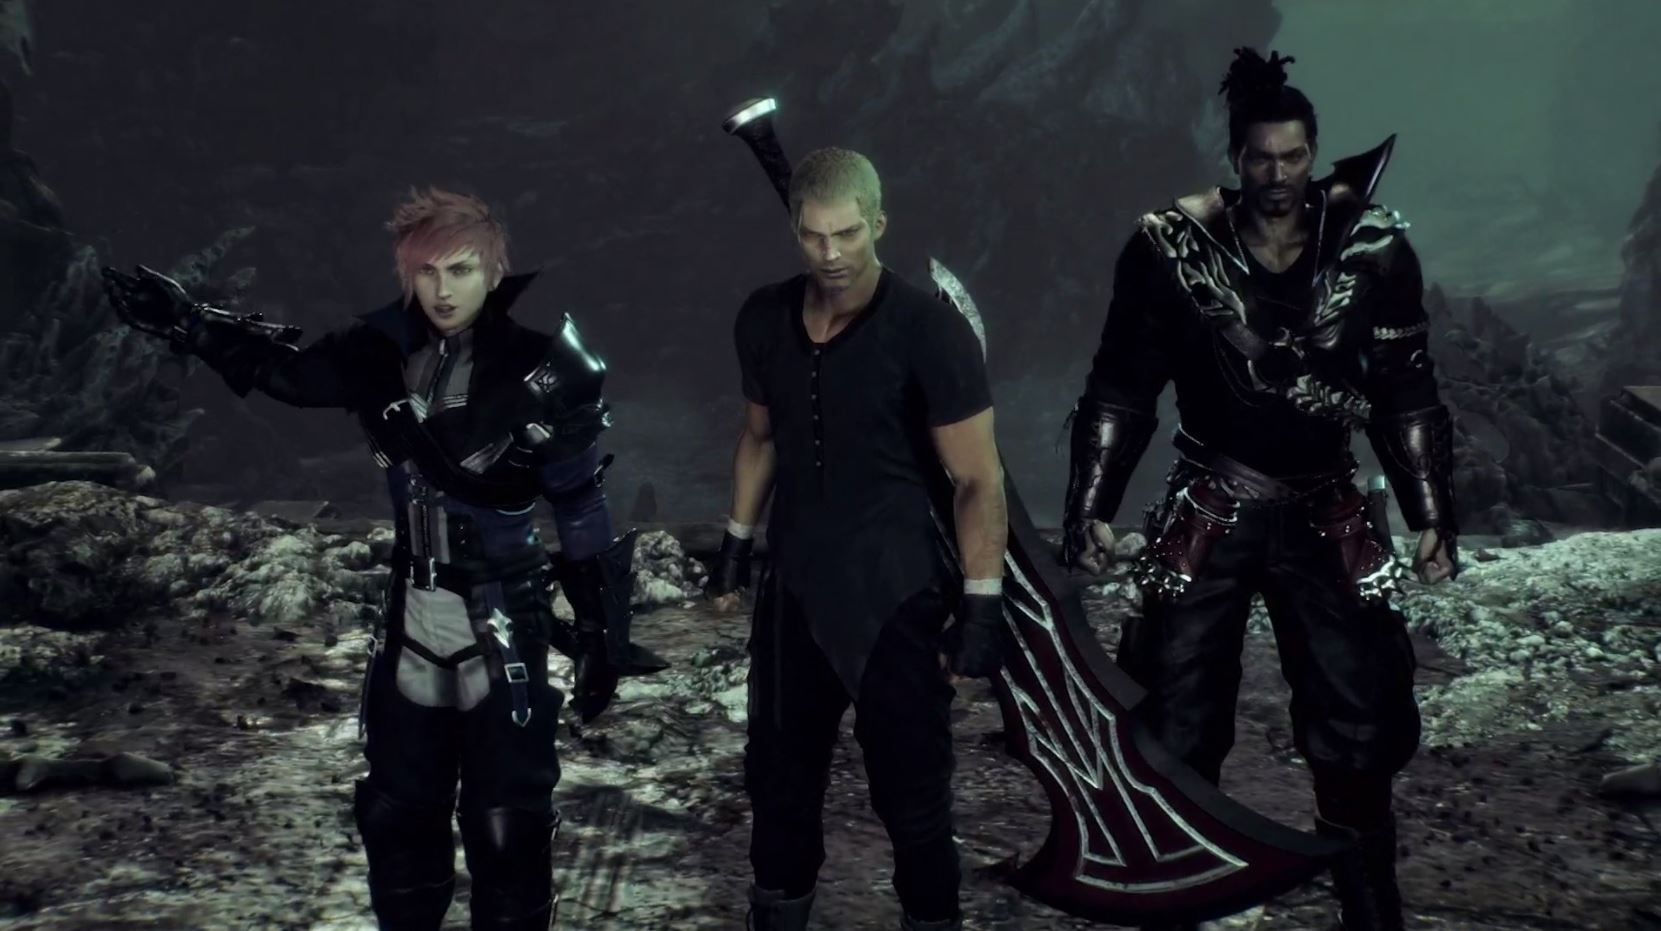 stranger-of-paradise-final-fantasy-origin-revealed-for-ps5-and-ps4-souls-like-developed-by-team-ninja-ps5-demo-announced